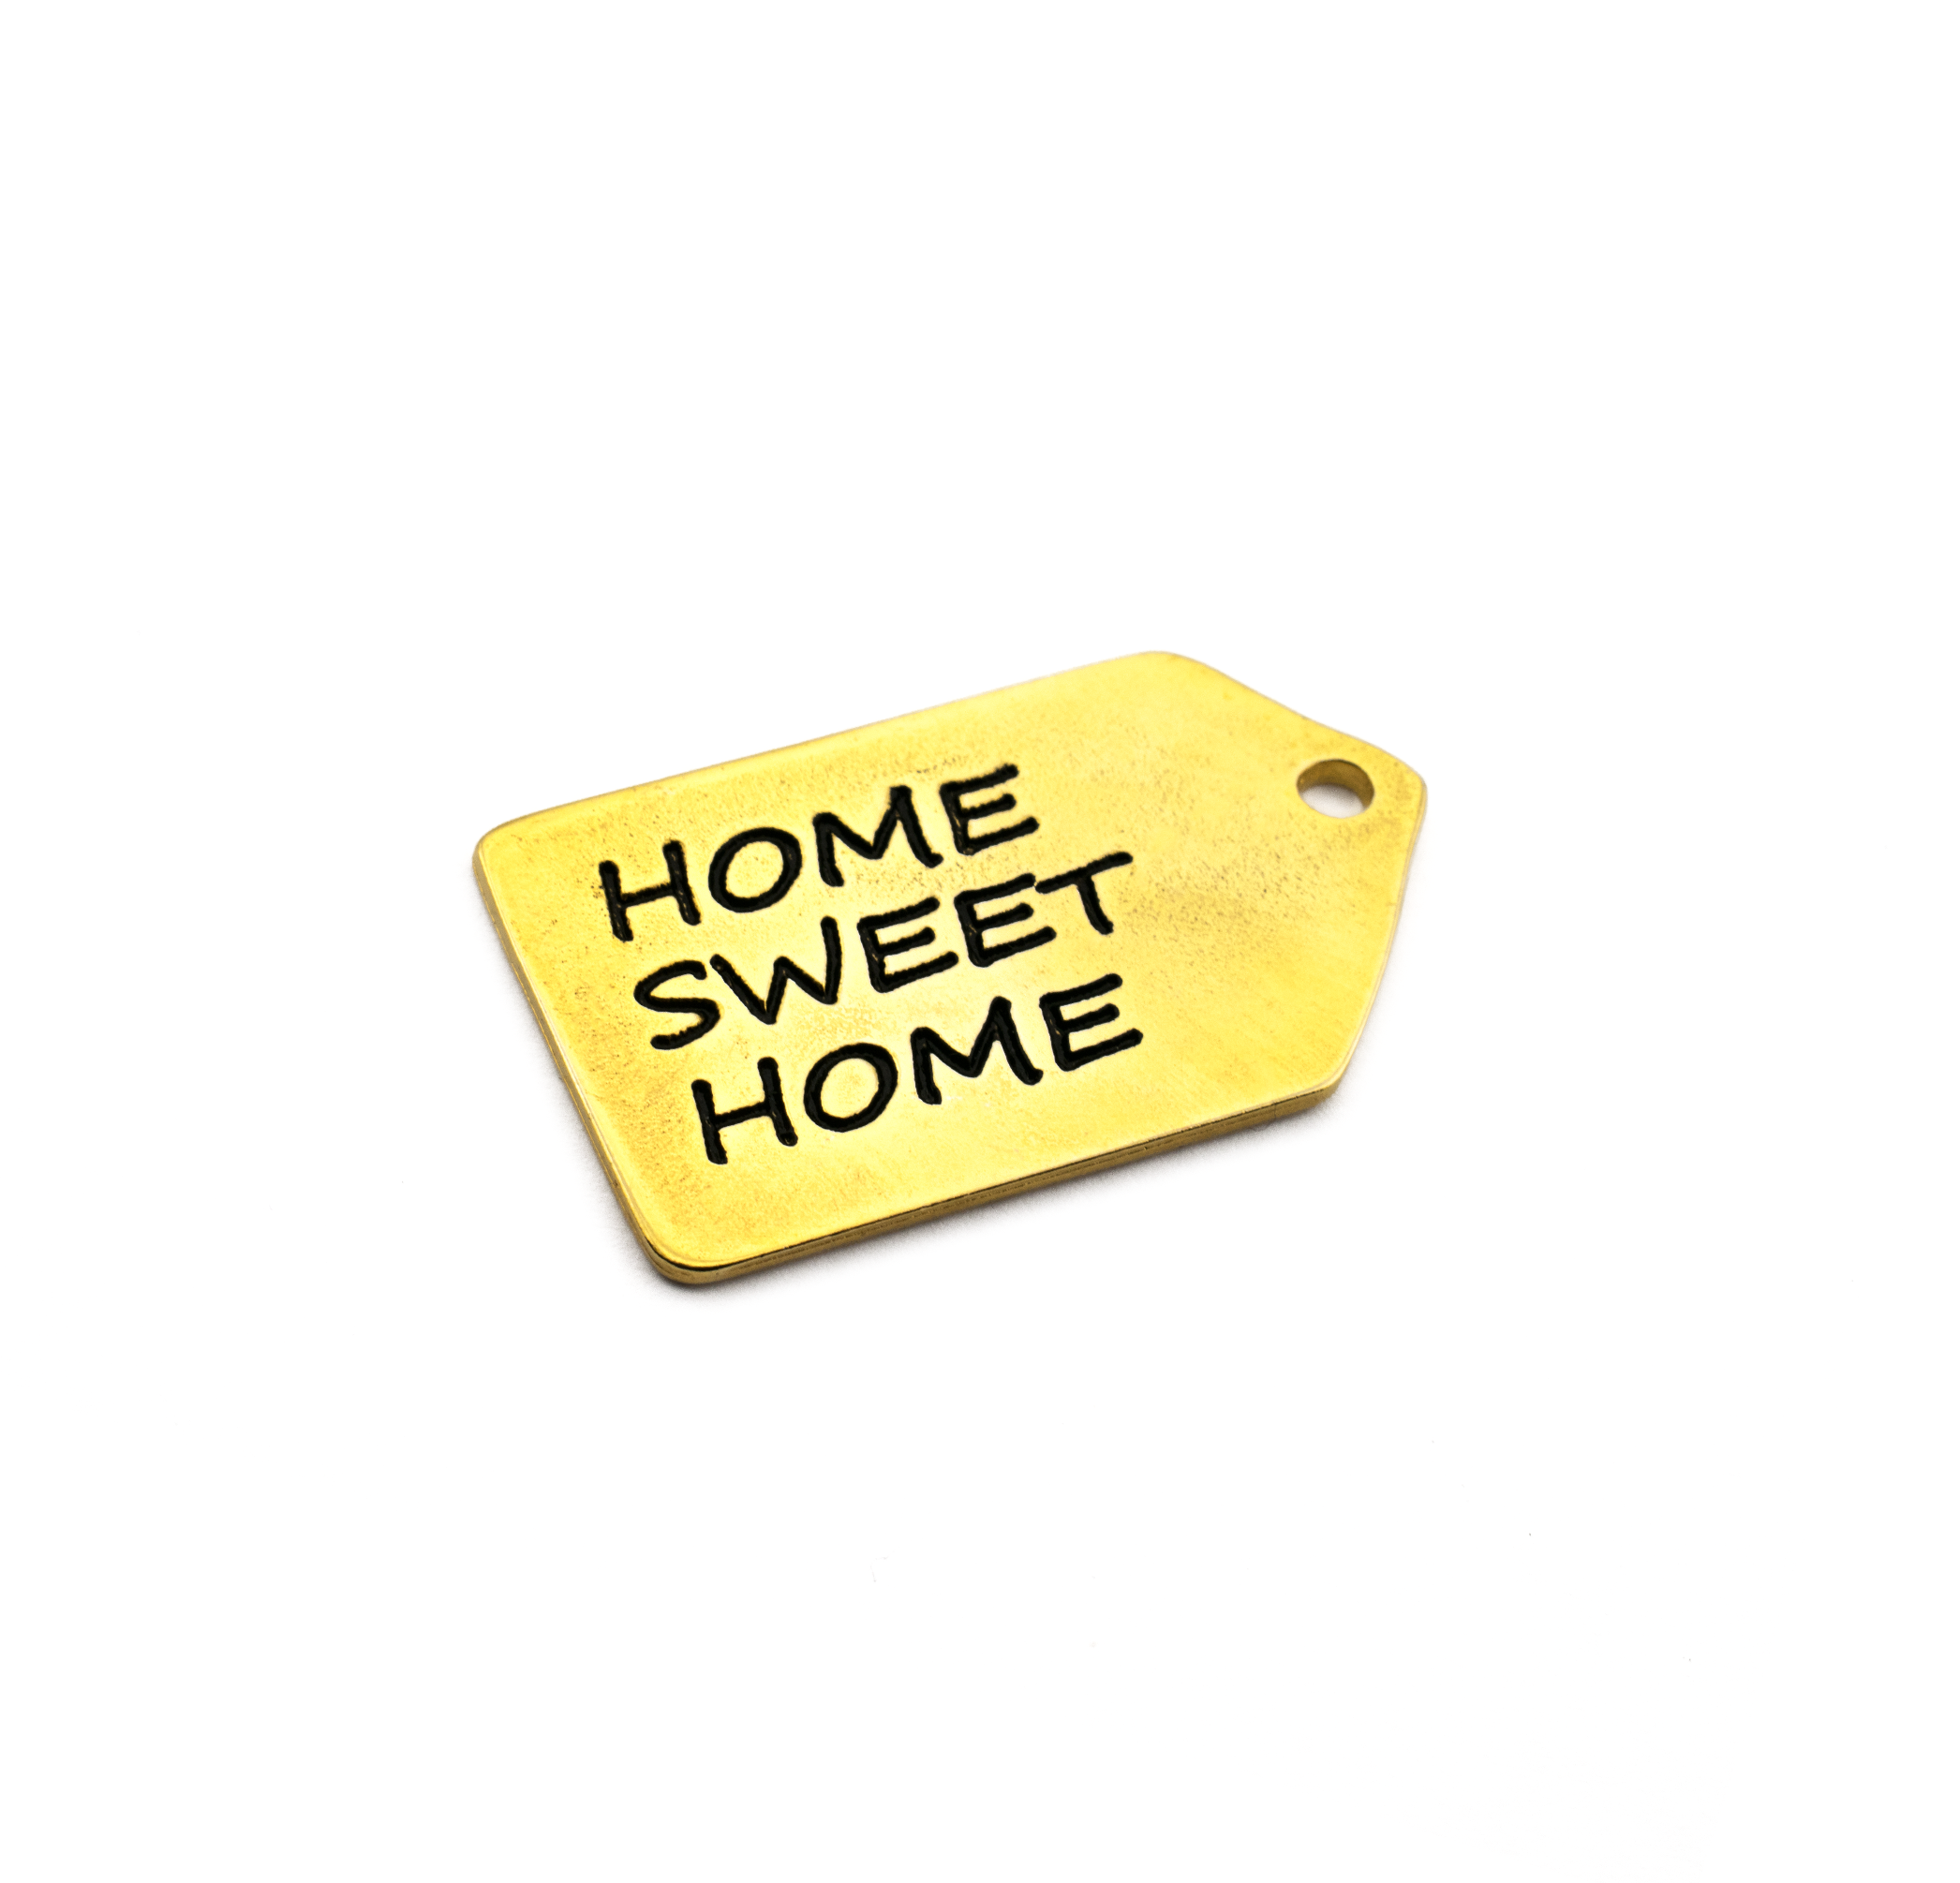 "PENDANT  ""HOME SWEET HOME"" GOLD PLATED 47x27mm"